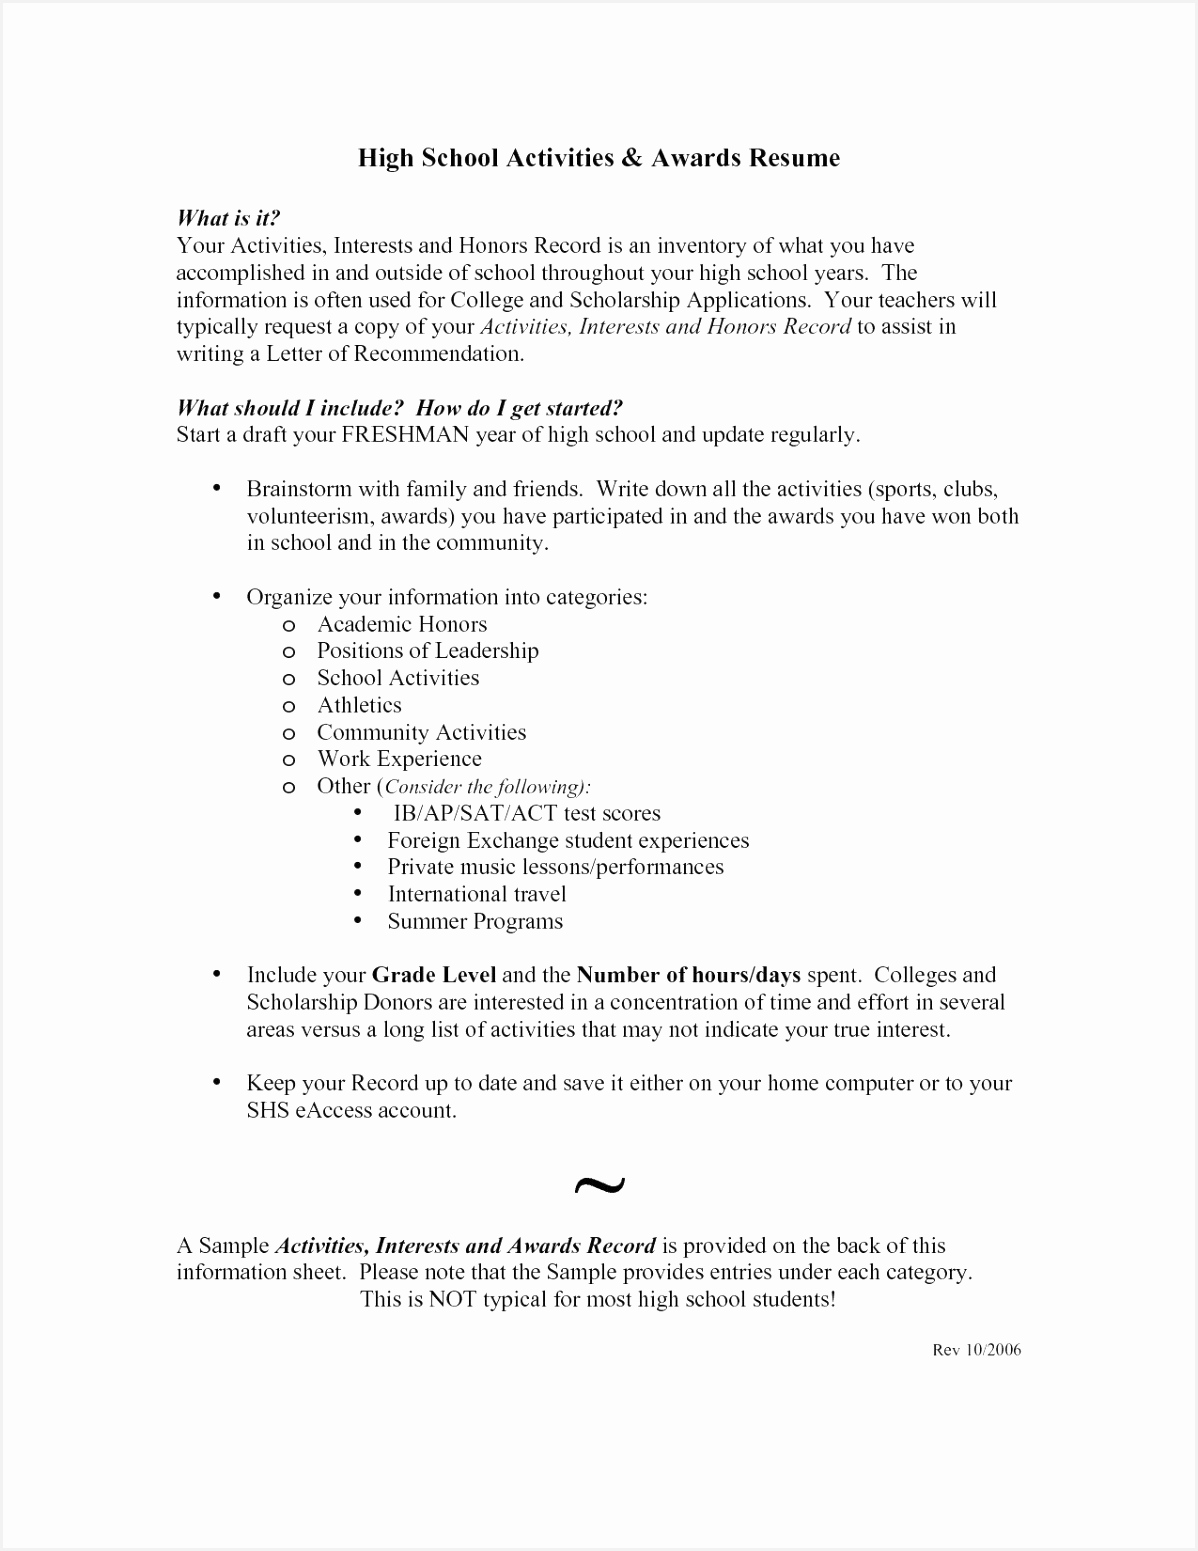 Sample Of A College Student Resume Nadqh Awesome Job Resume High School Student Best 21 Lovely Job Resume Examples Of 7 Sample Of A College Student Resume